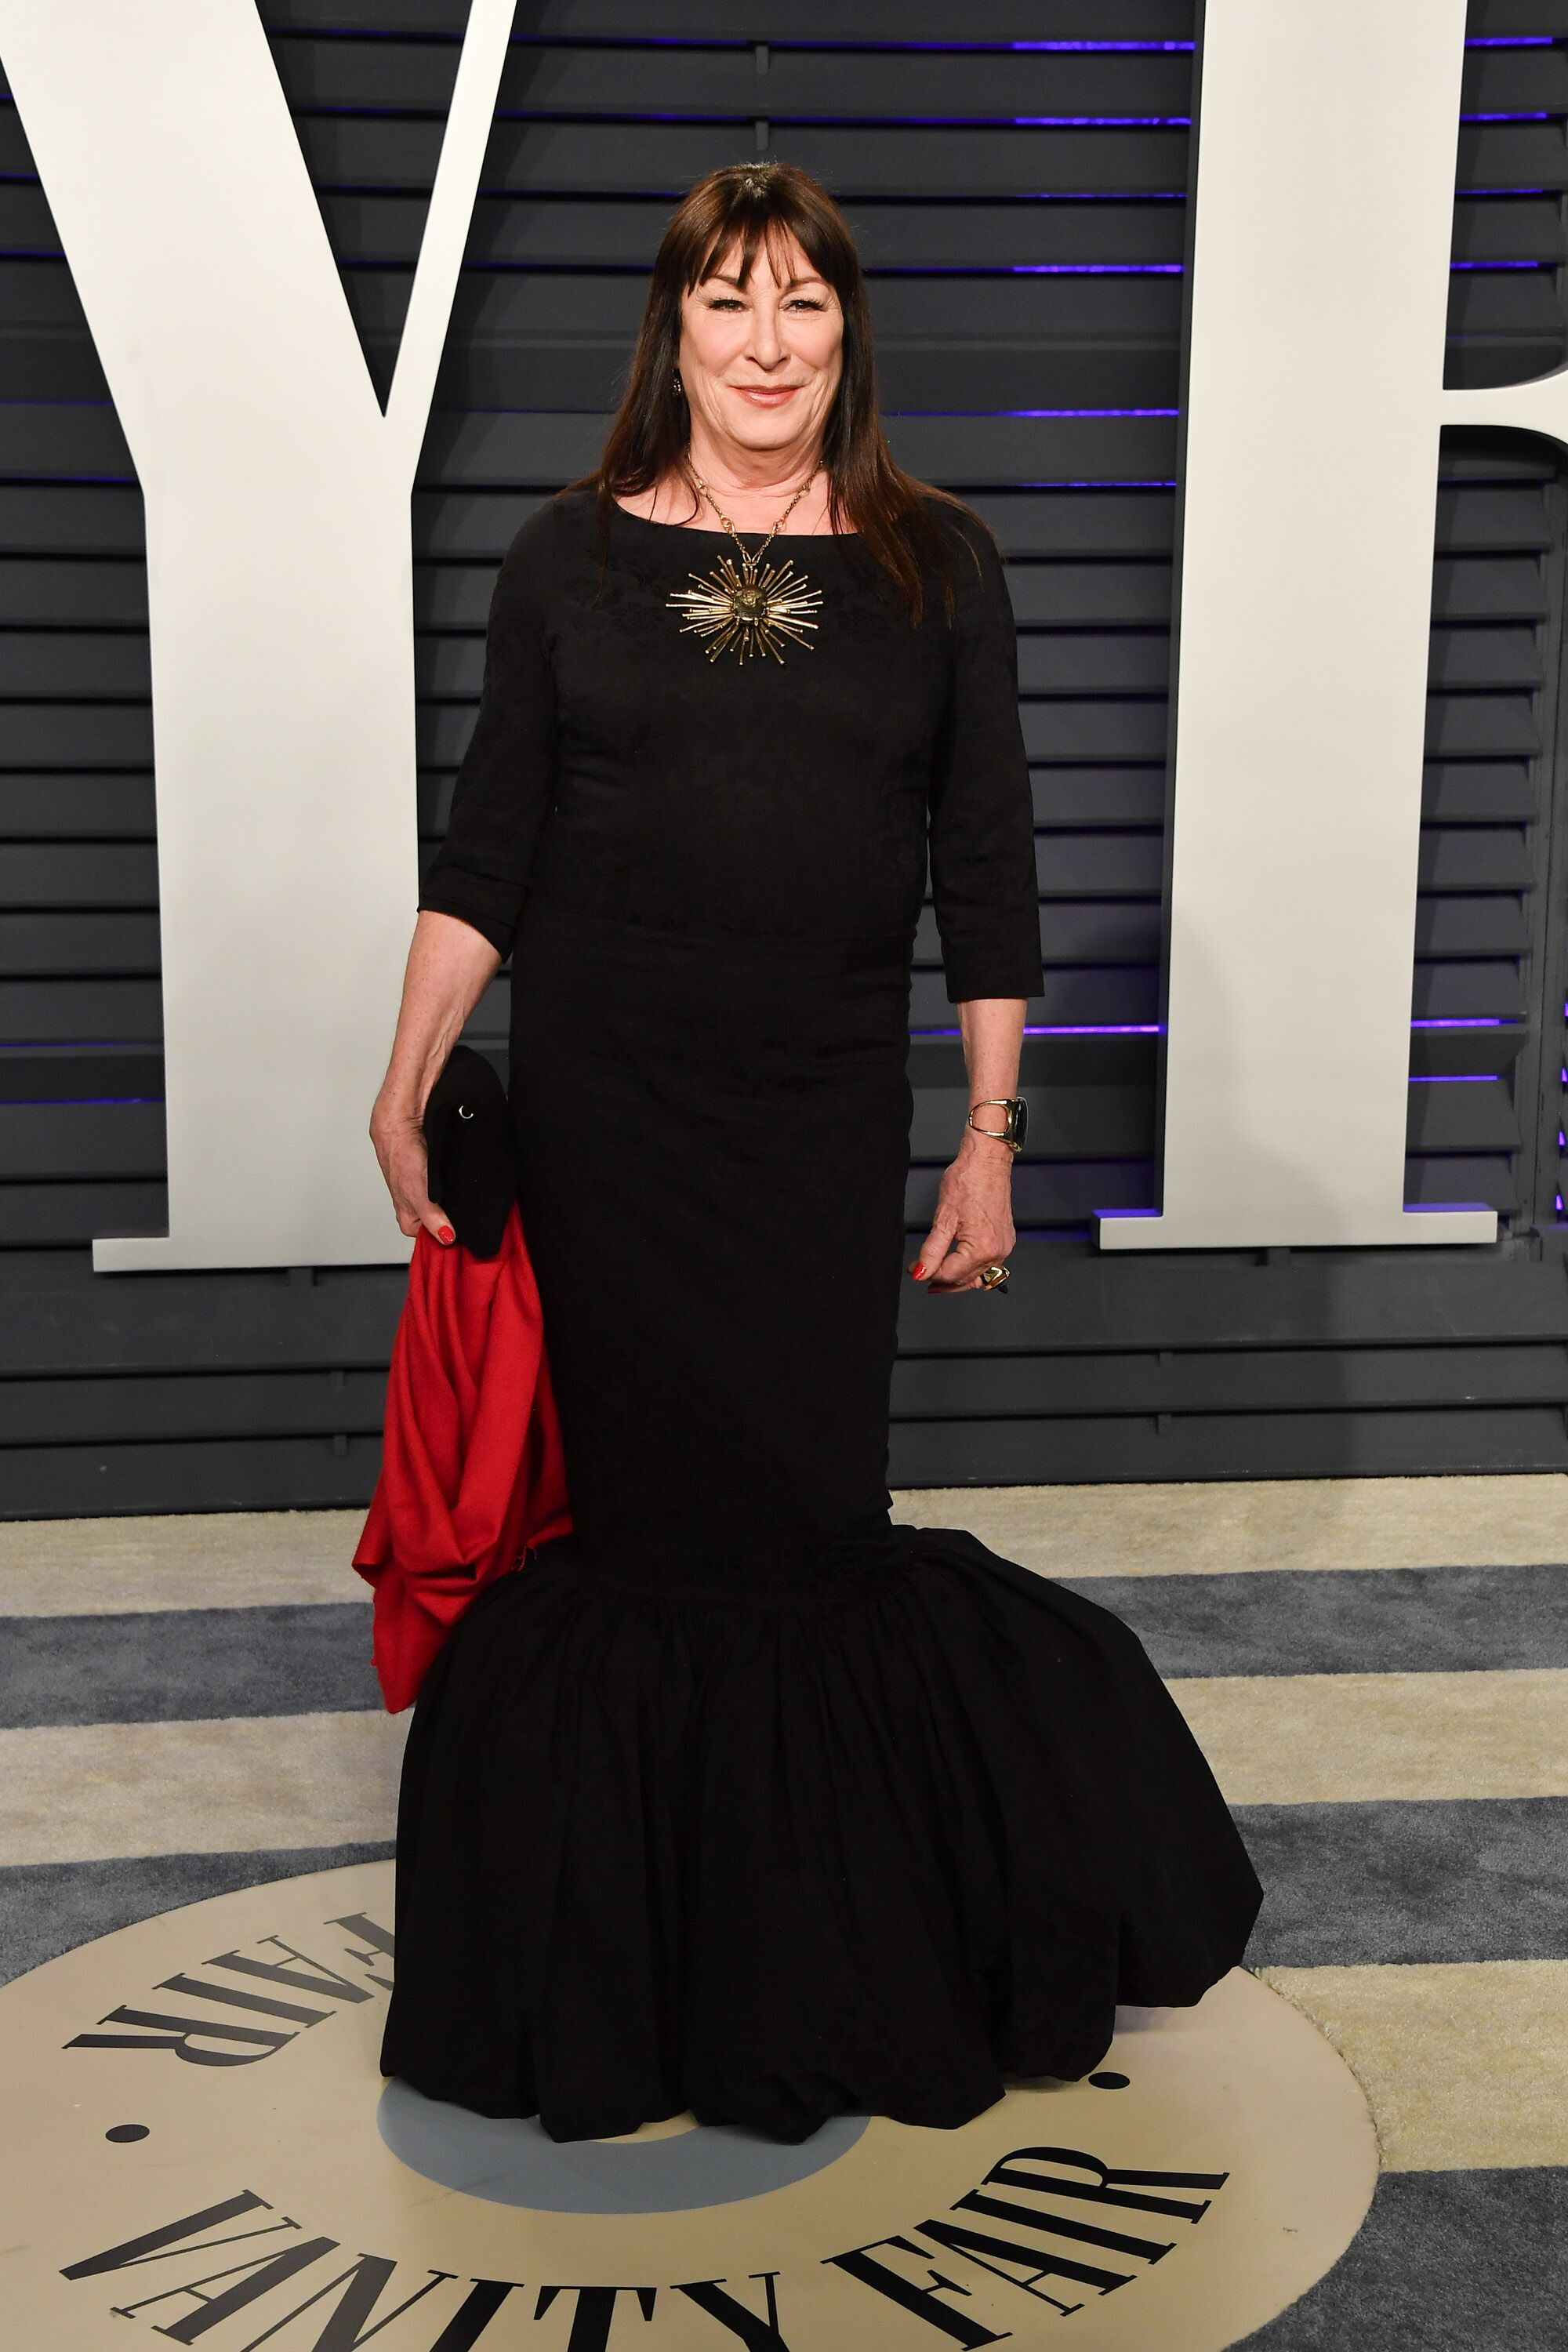 Anjelica Huston attends the 2019 Vanity Fair Oscar Party hosted by Radhika Jones at Wallis Annenberg Center | Getty Images / Global Images Ukraine